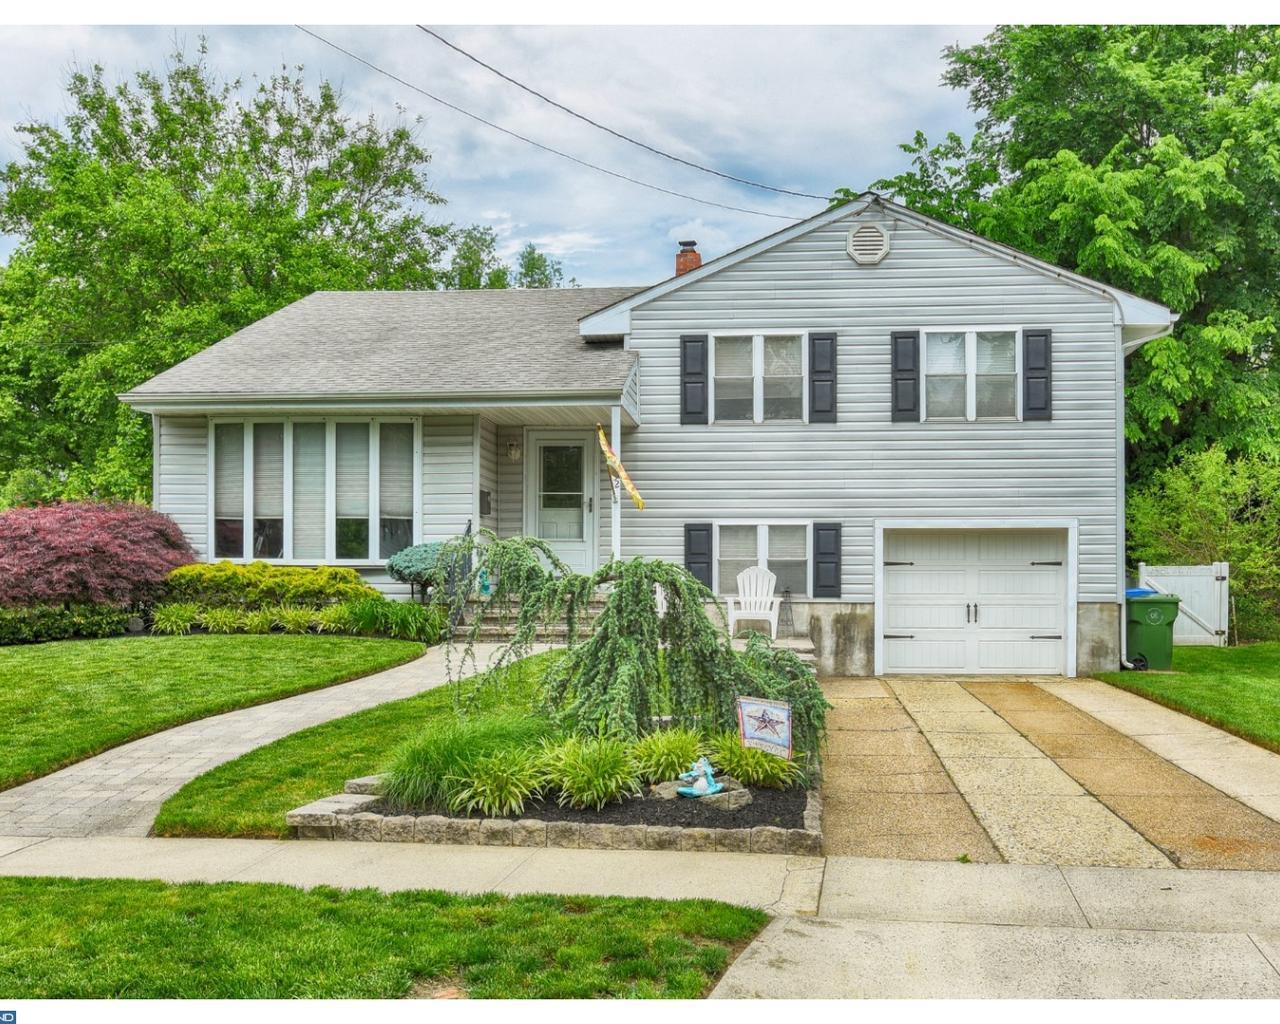 232 Maine Ave Cherry Hill Nj Mls 6992679 Better